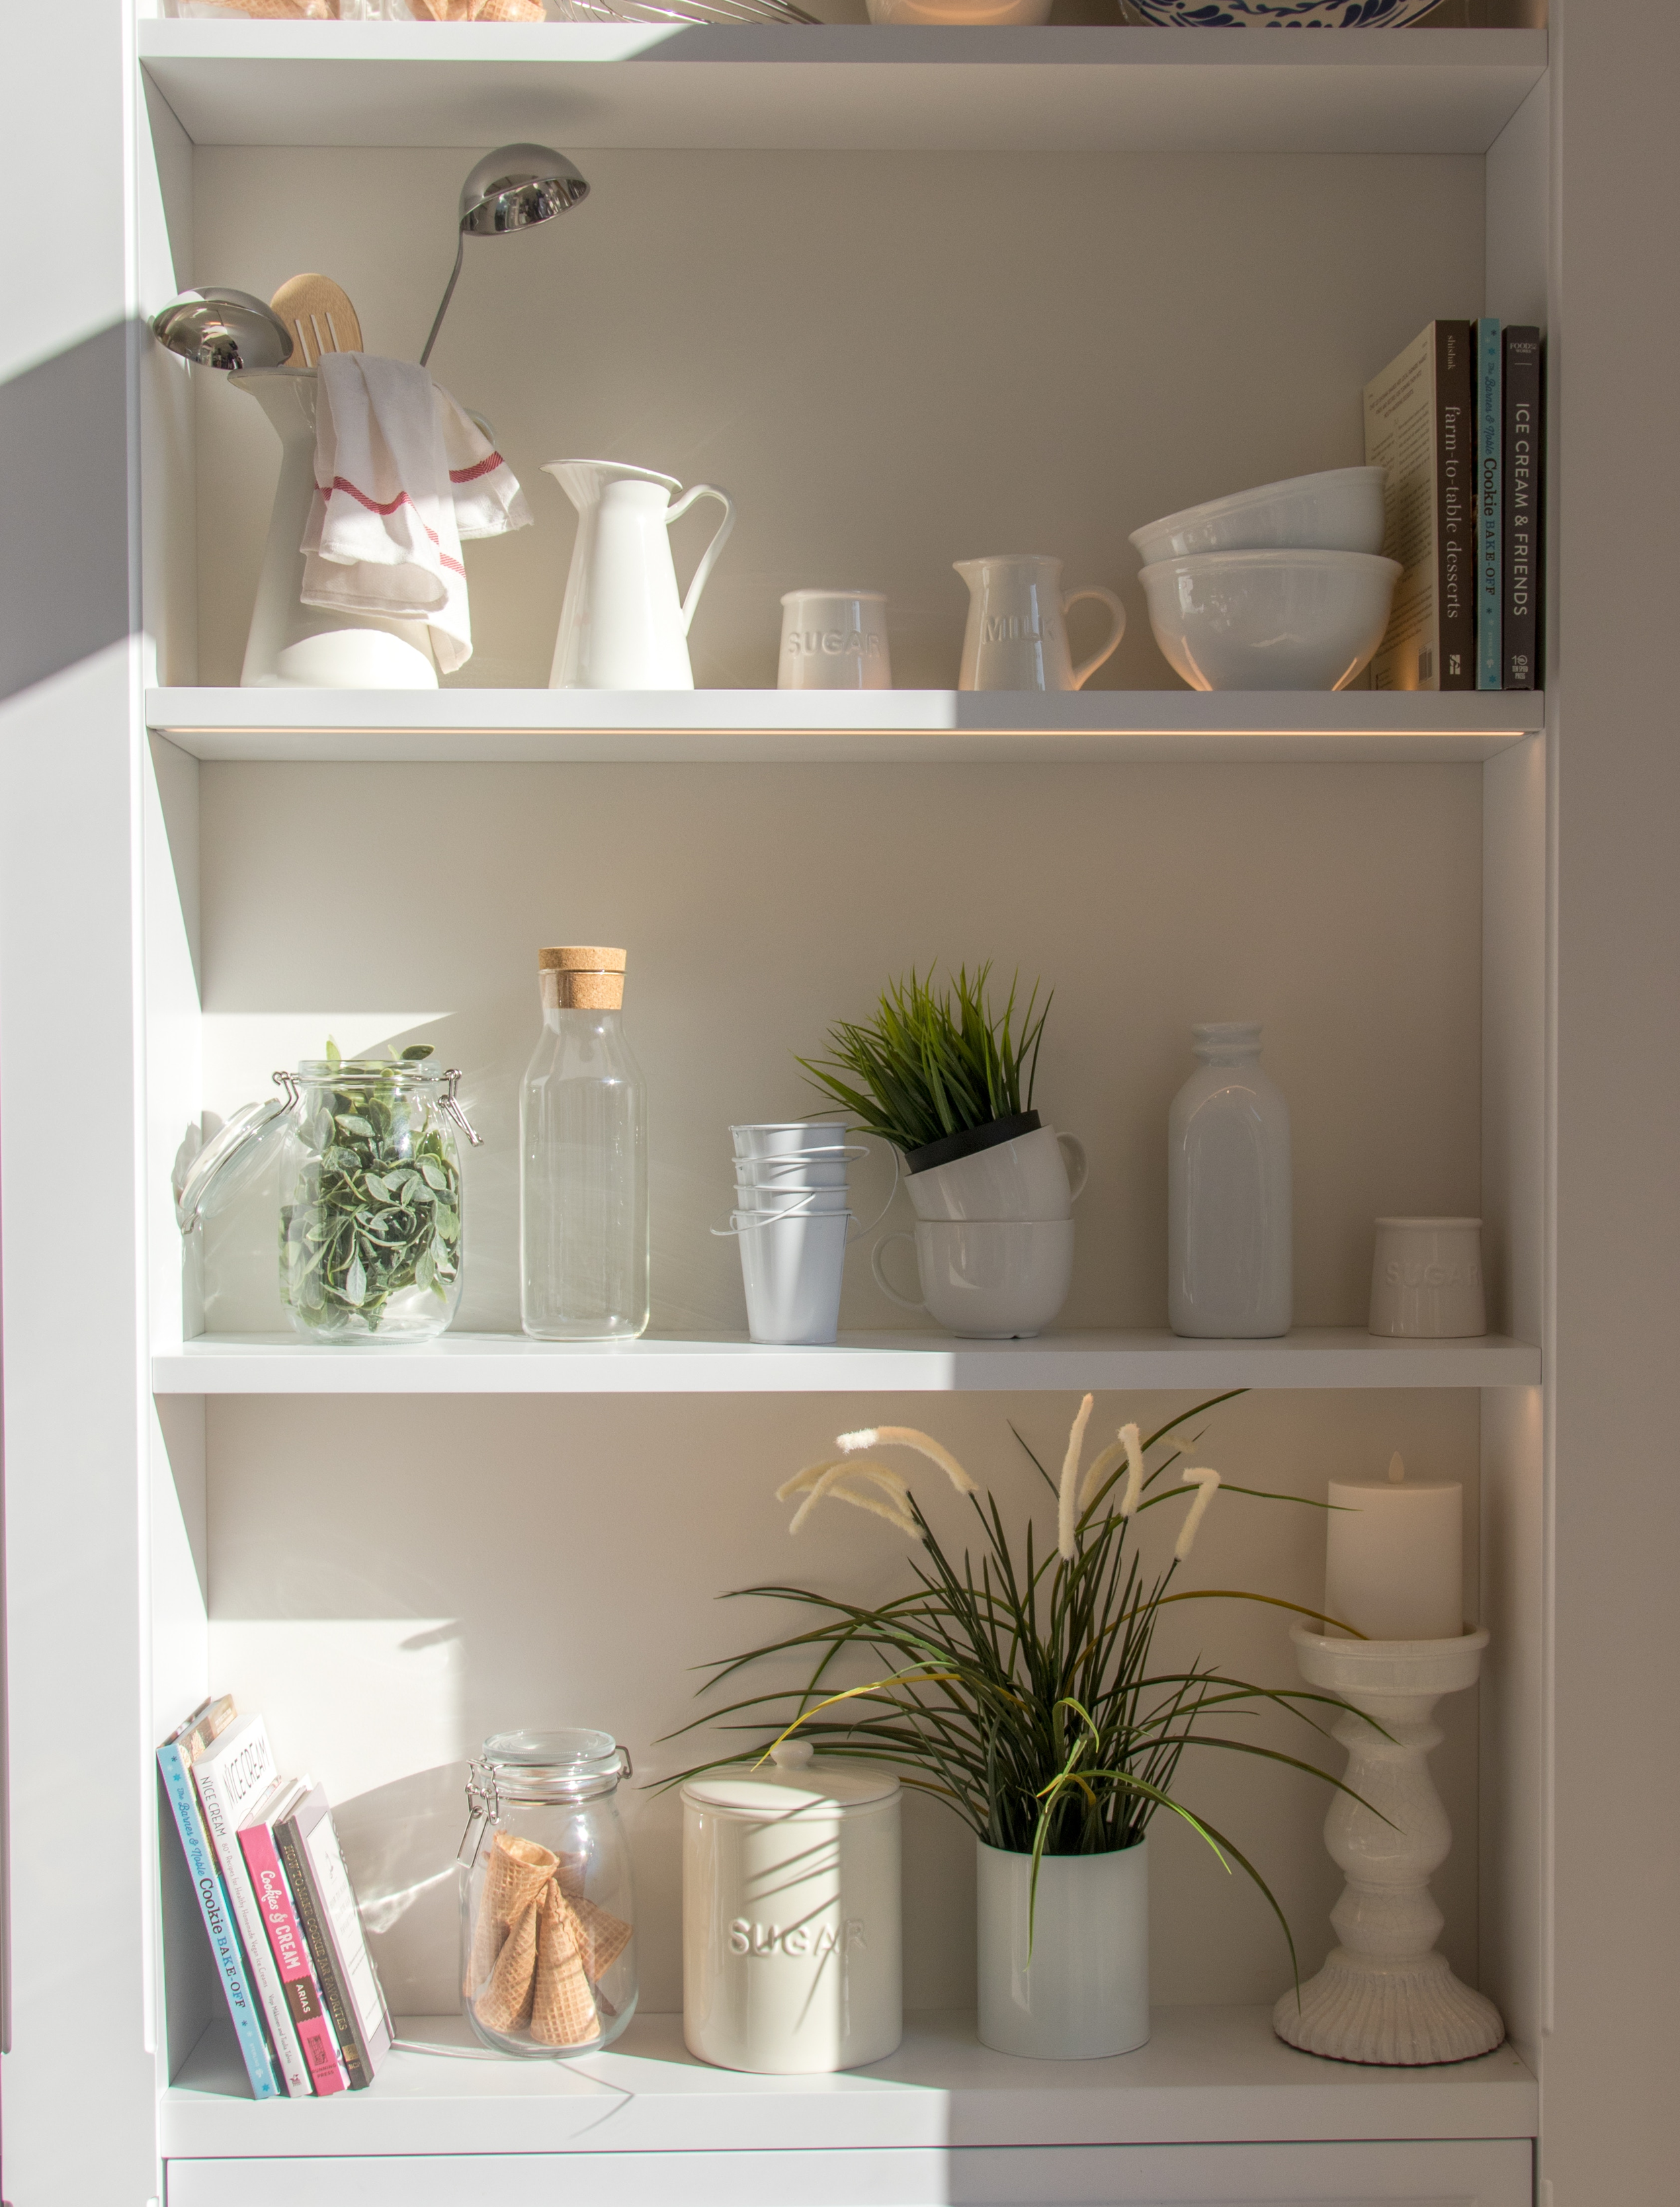 3. sustainable systems - Now that your space is organized we can get an overall view of what furnishings and systems you'll need to finalize your goals and keep things in order. Relish in the joy of having a clean, orderly space!